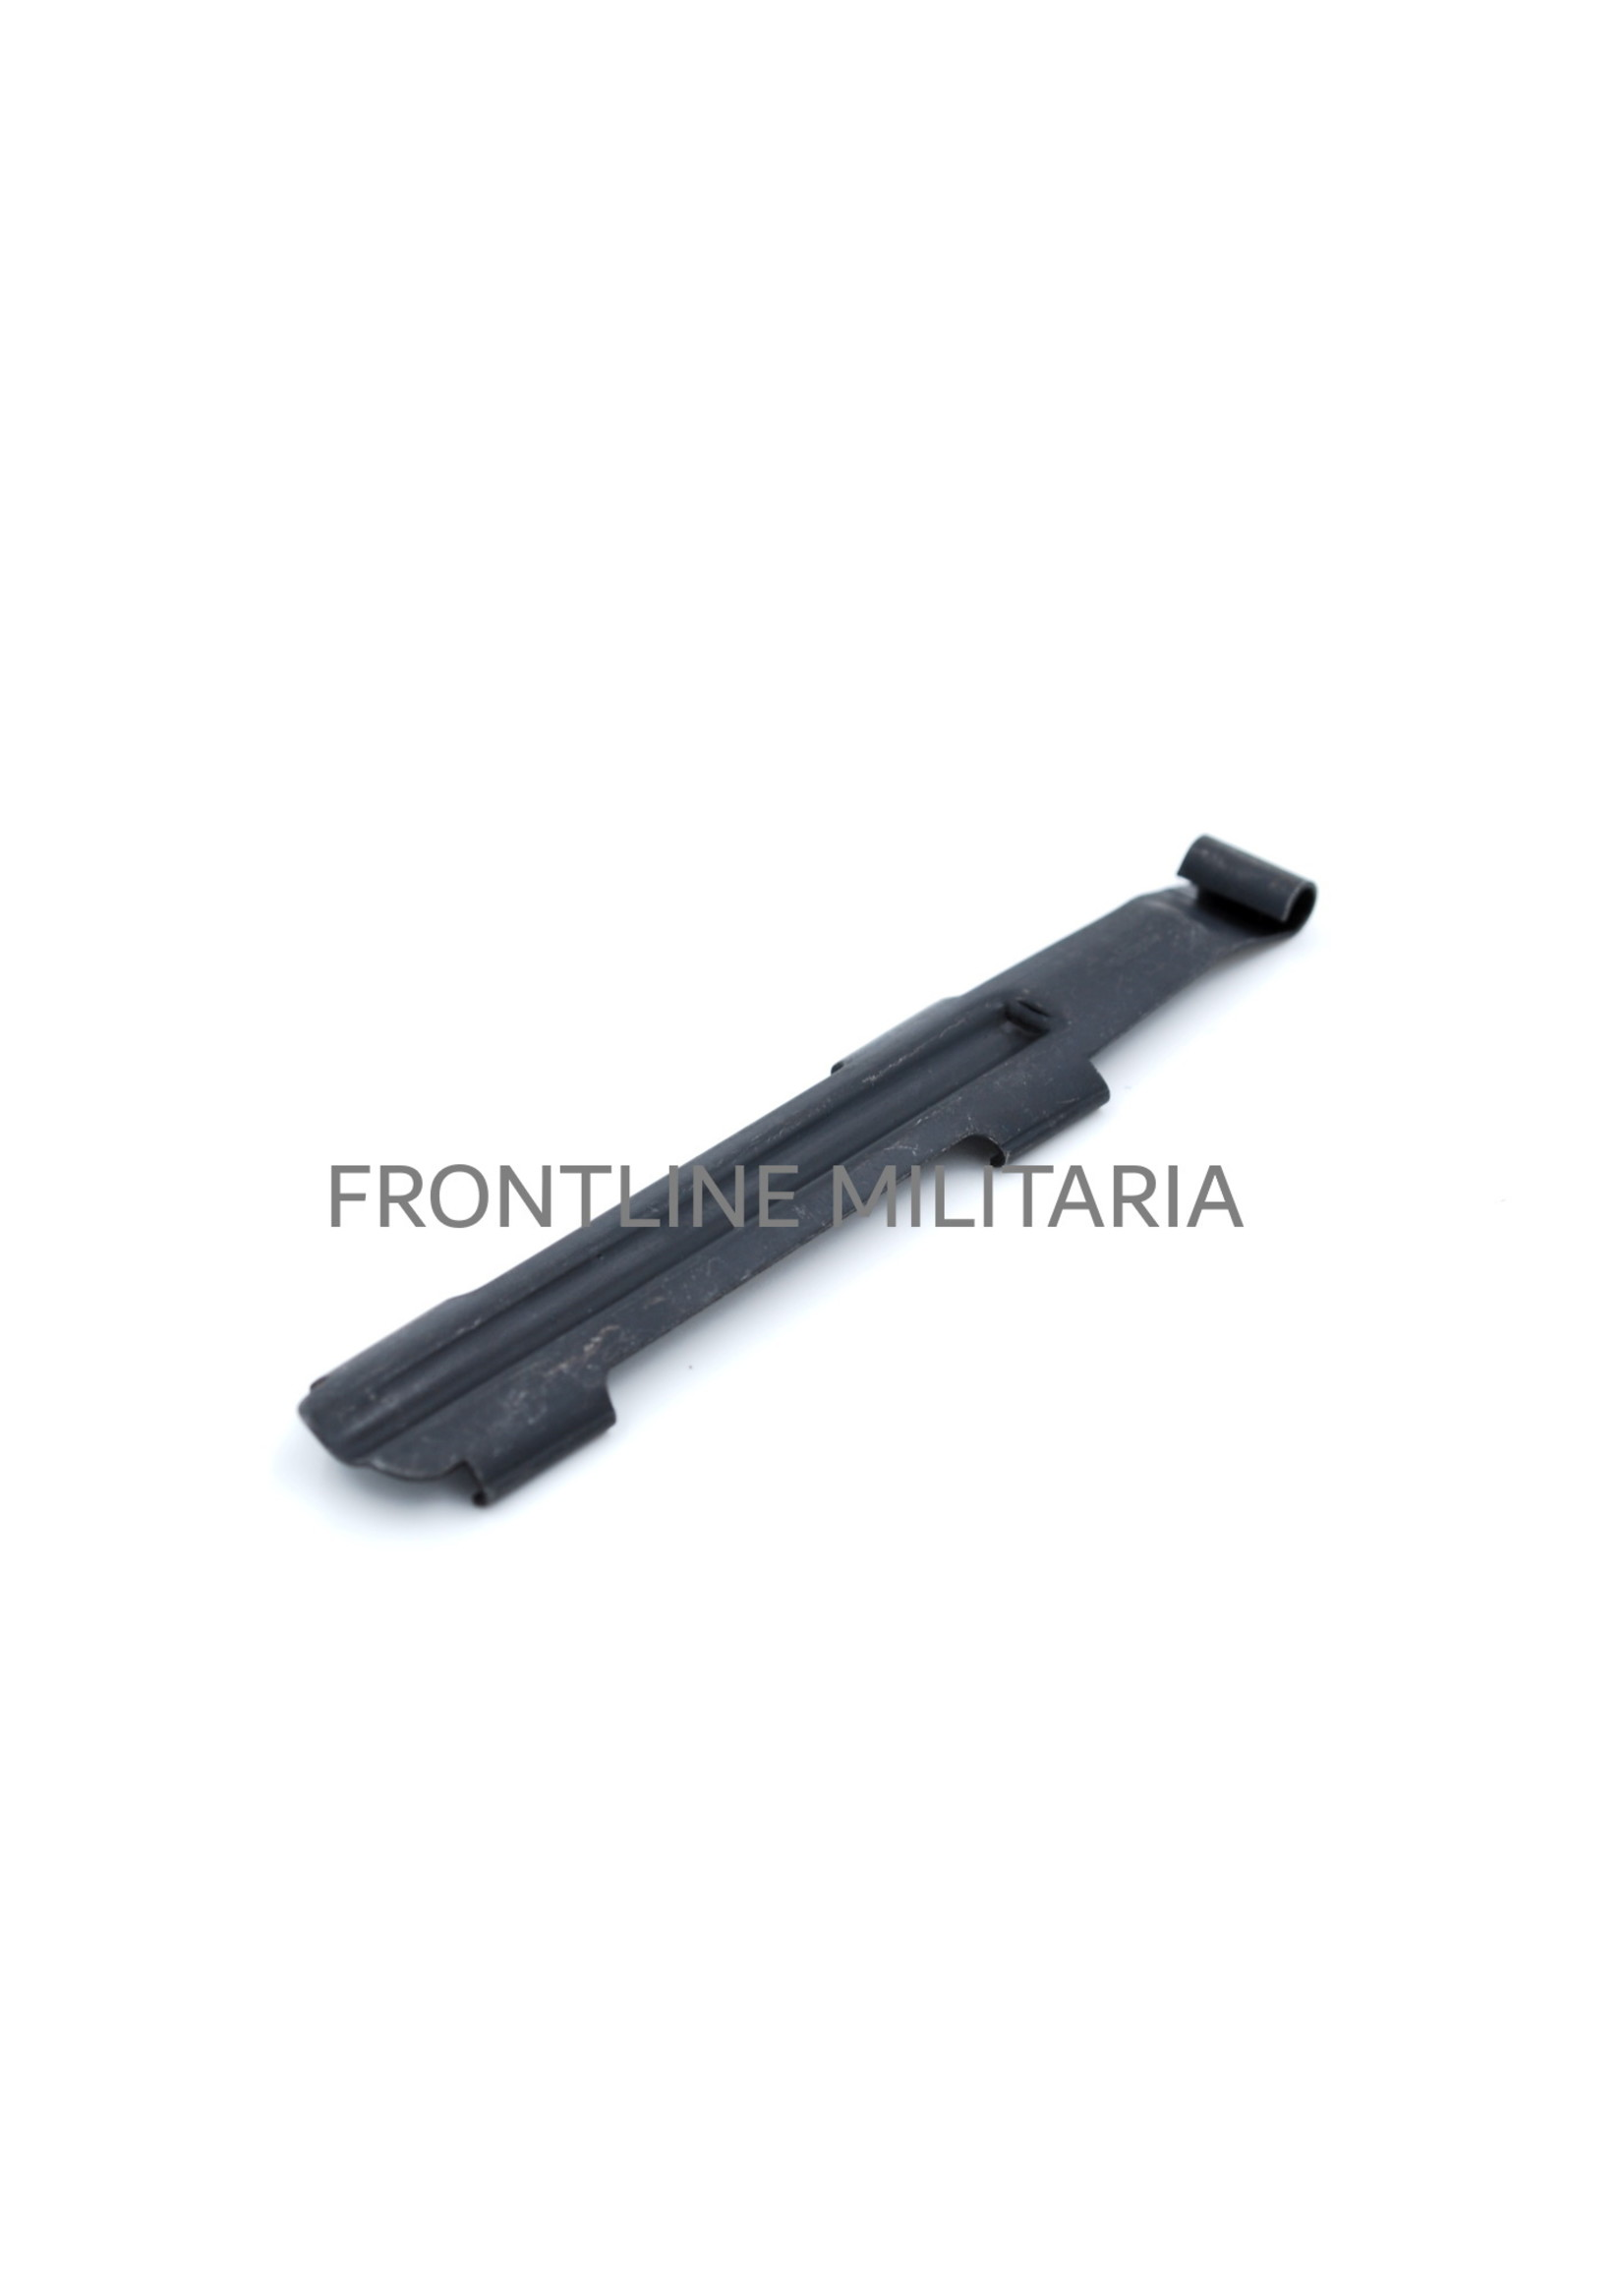 Sliding dust cover for the G43 and K43 rifle